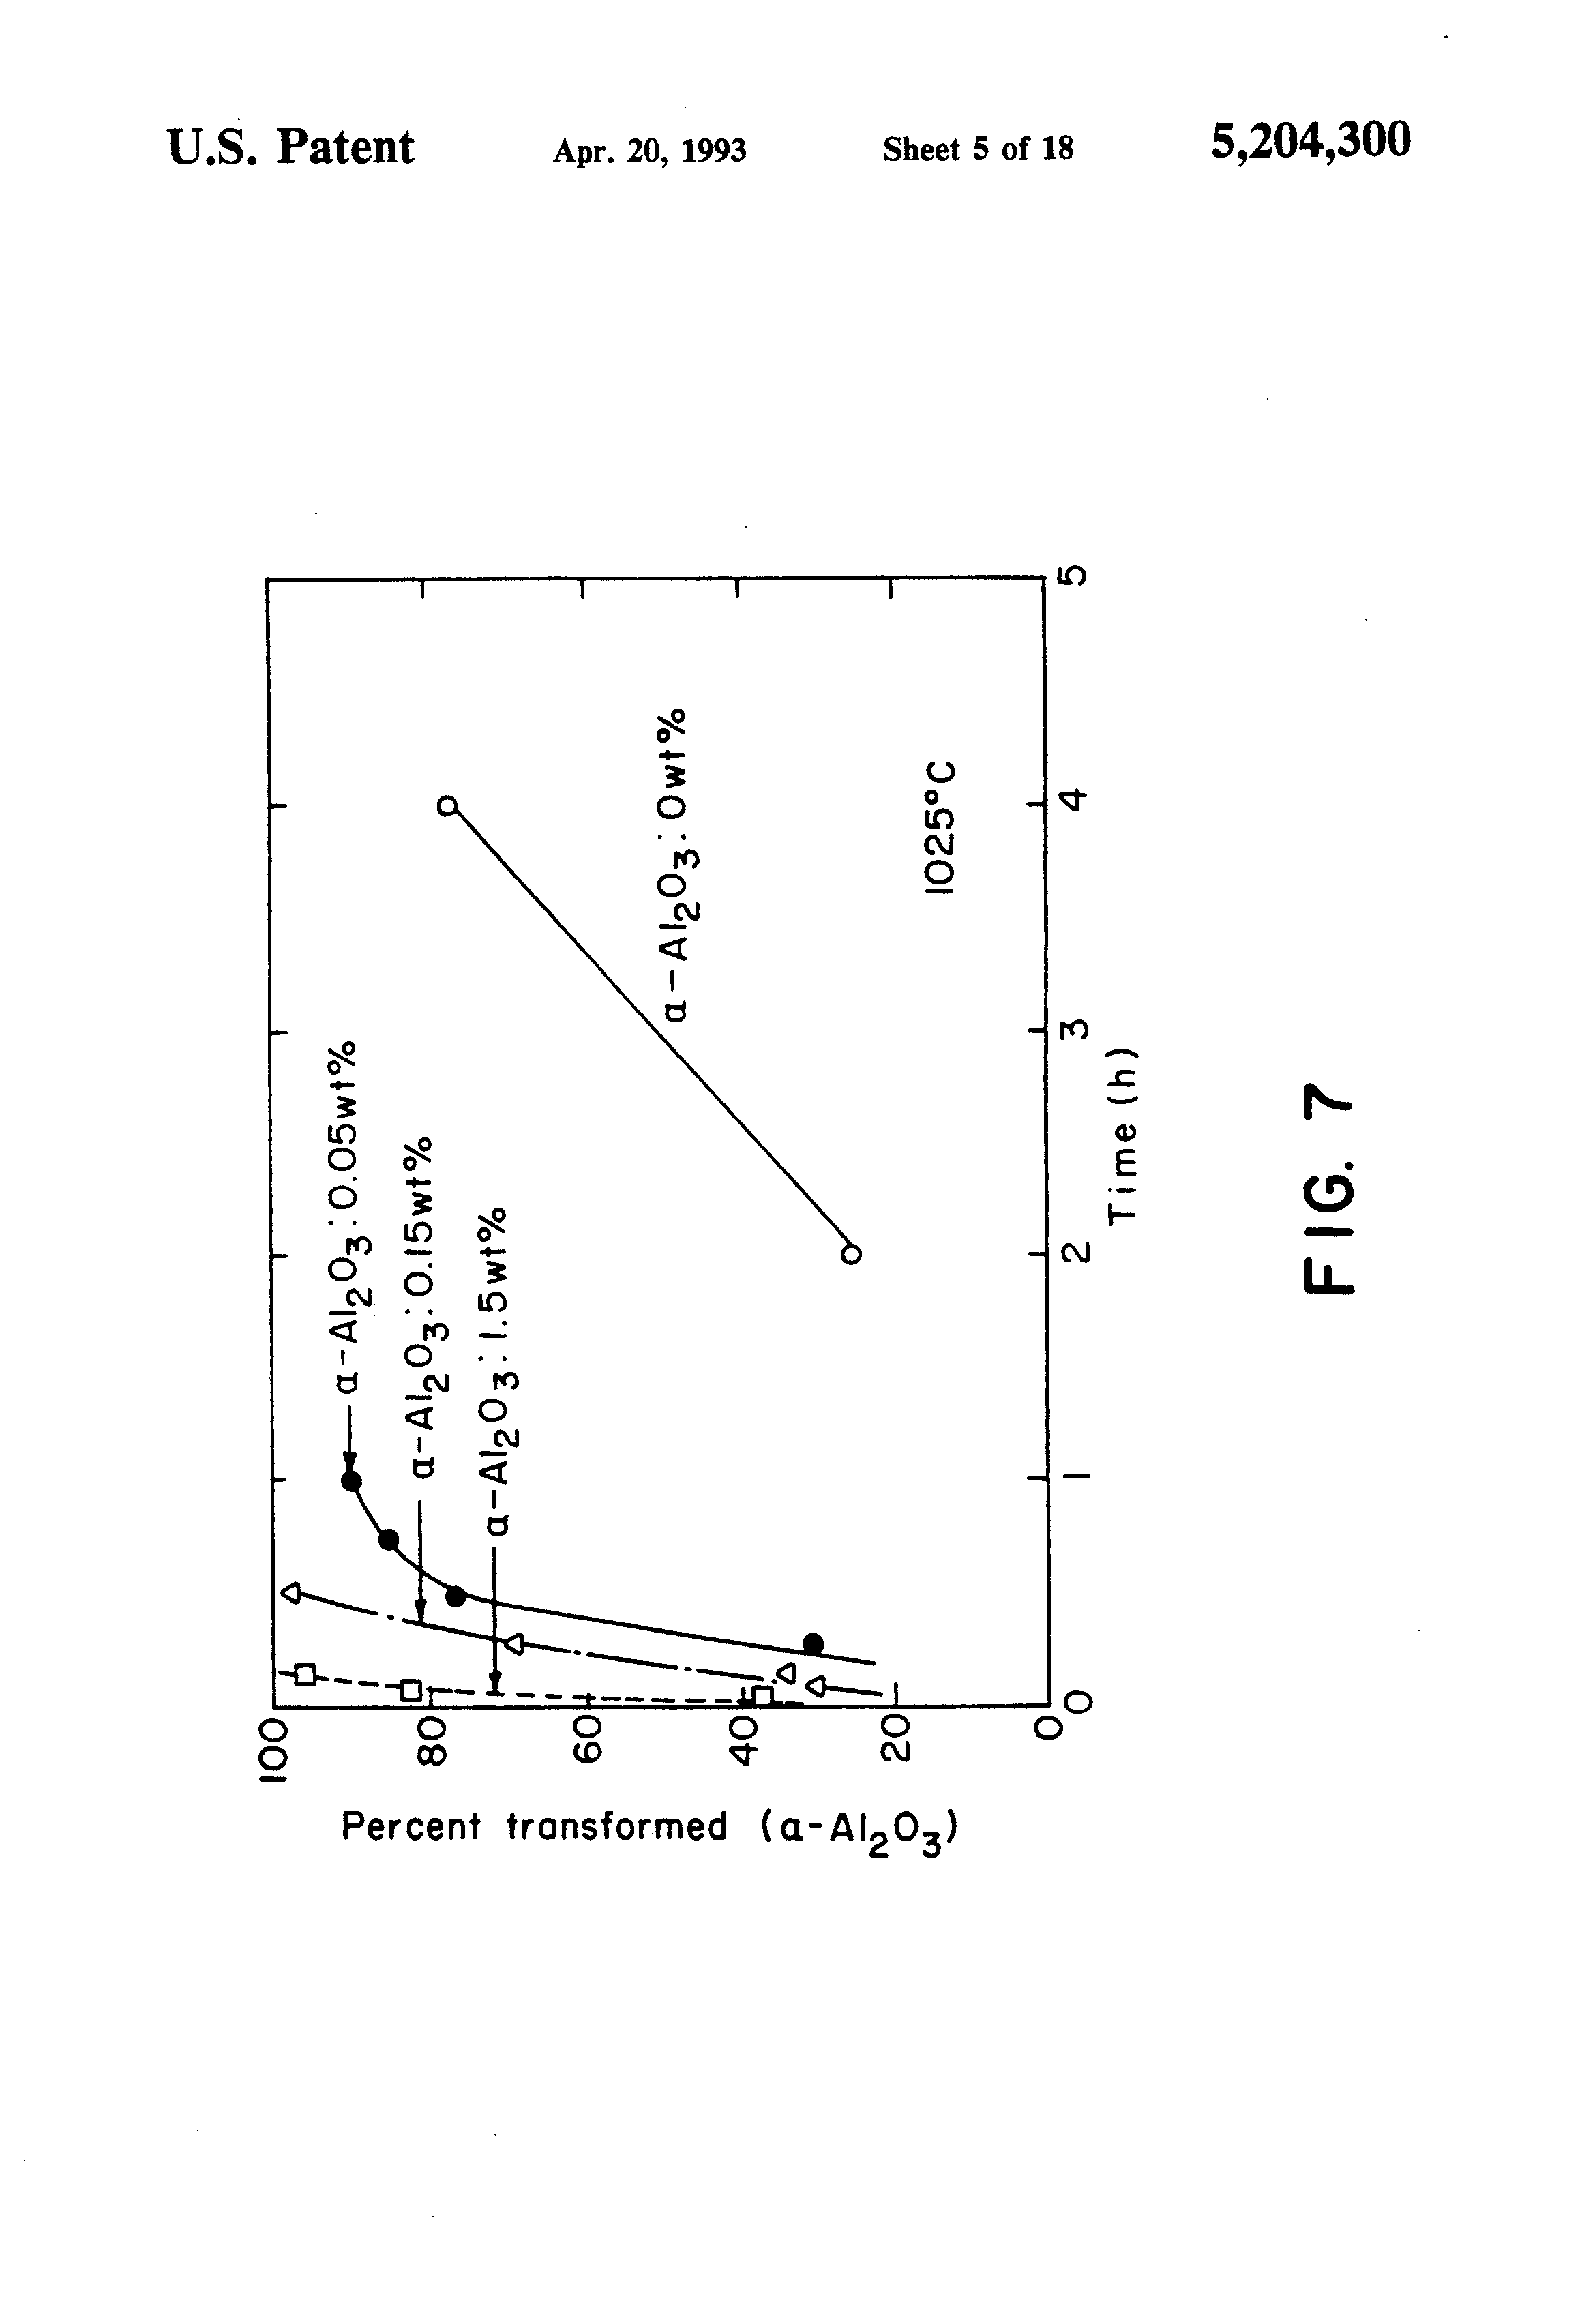 nucleation and growth in solid state reactions Phase diagrams ] [ chapter 10: phase transformations in metals 103 the kinetics of solid-state reactions nucleation and growth nucleation involves the.